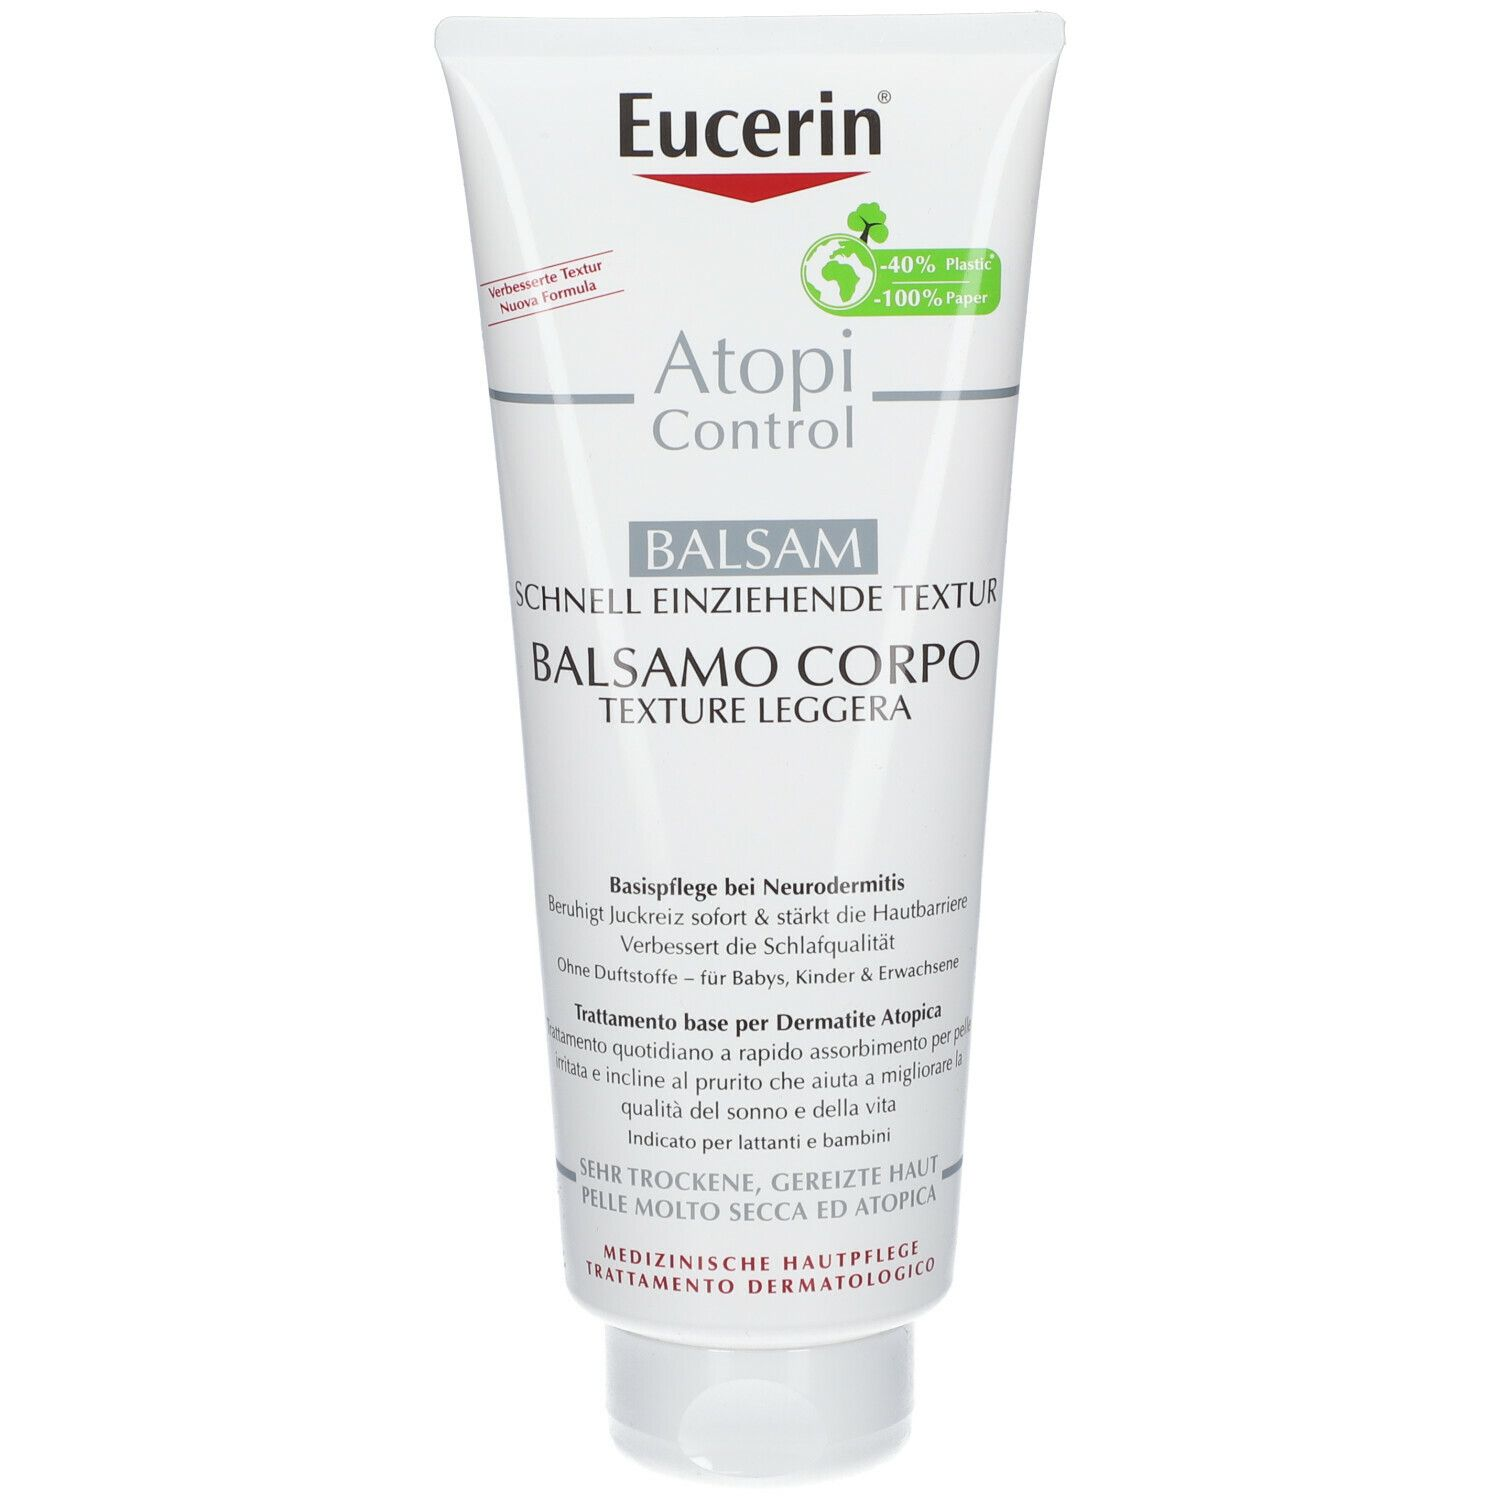 Image of Eucerin® Atopi Control BALSAM